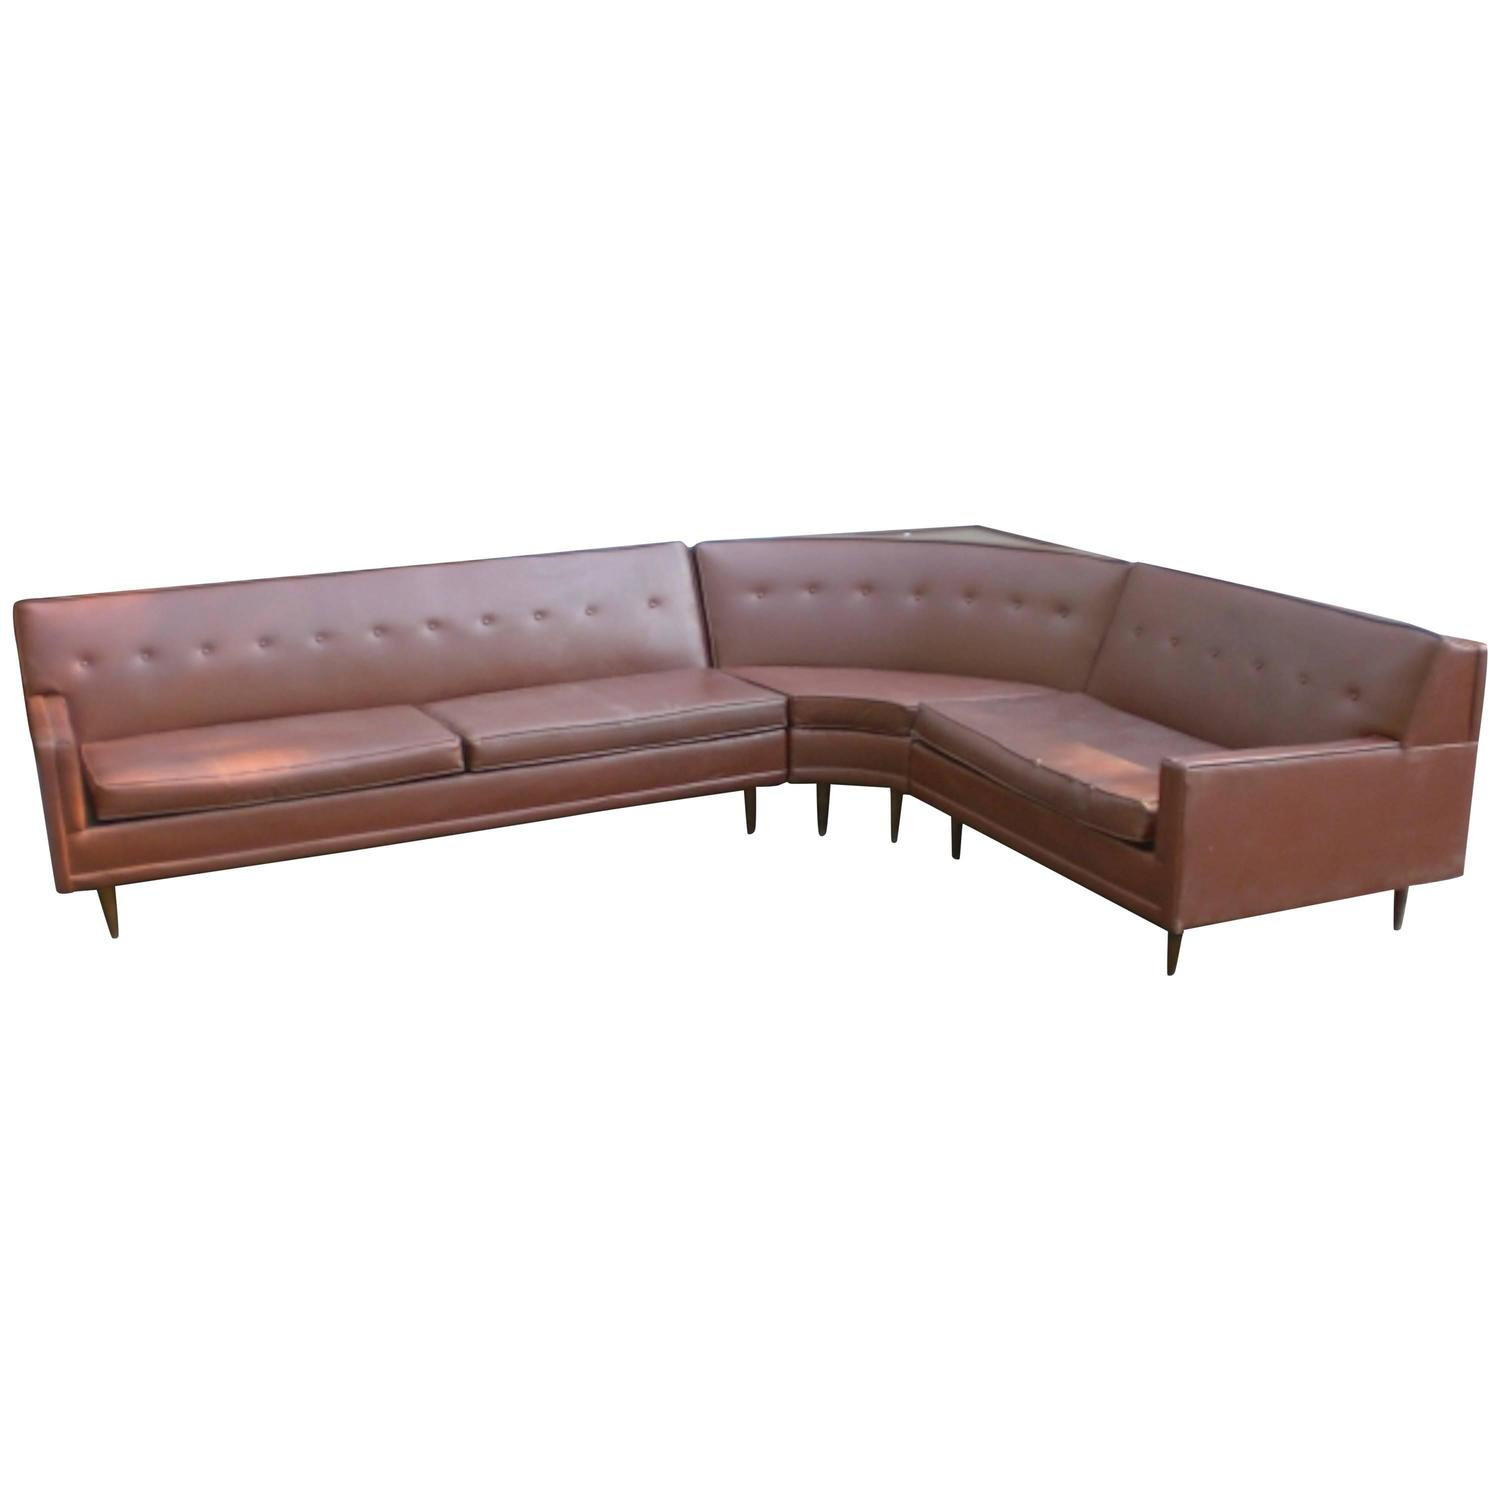 Mid century sectional sofa for sale at 1stdibs for Mid century sectional sofa for sale